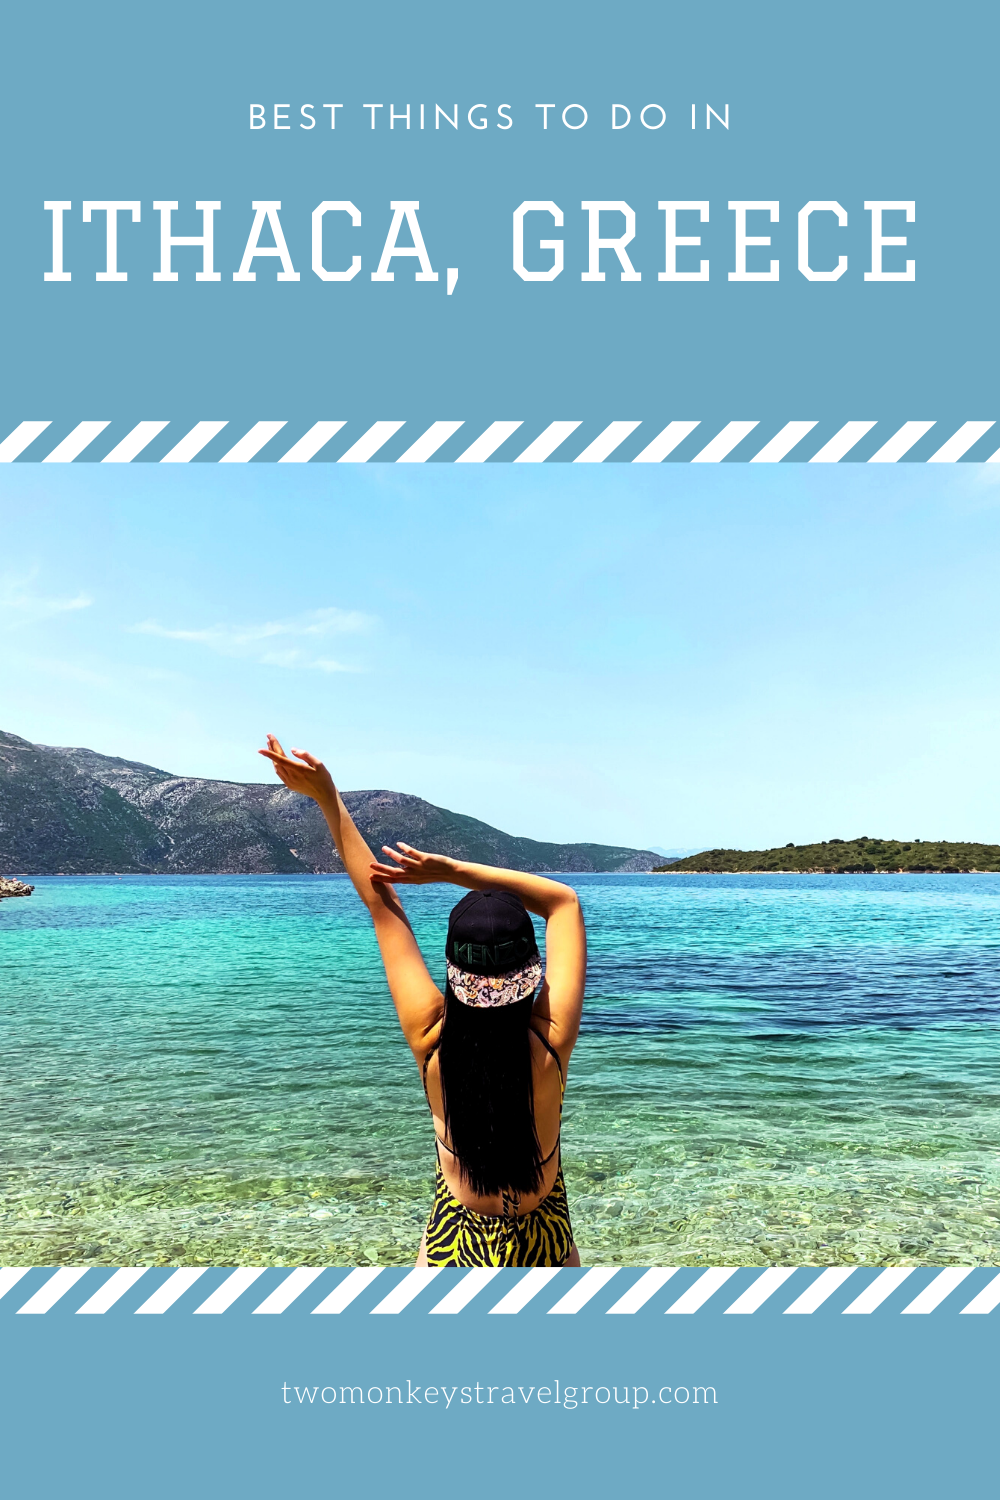 10 Best Things to do in Ithaca, Greece